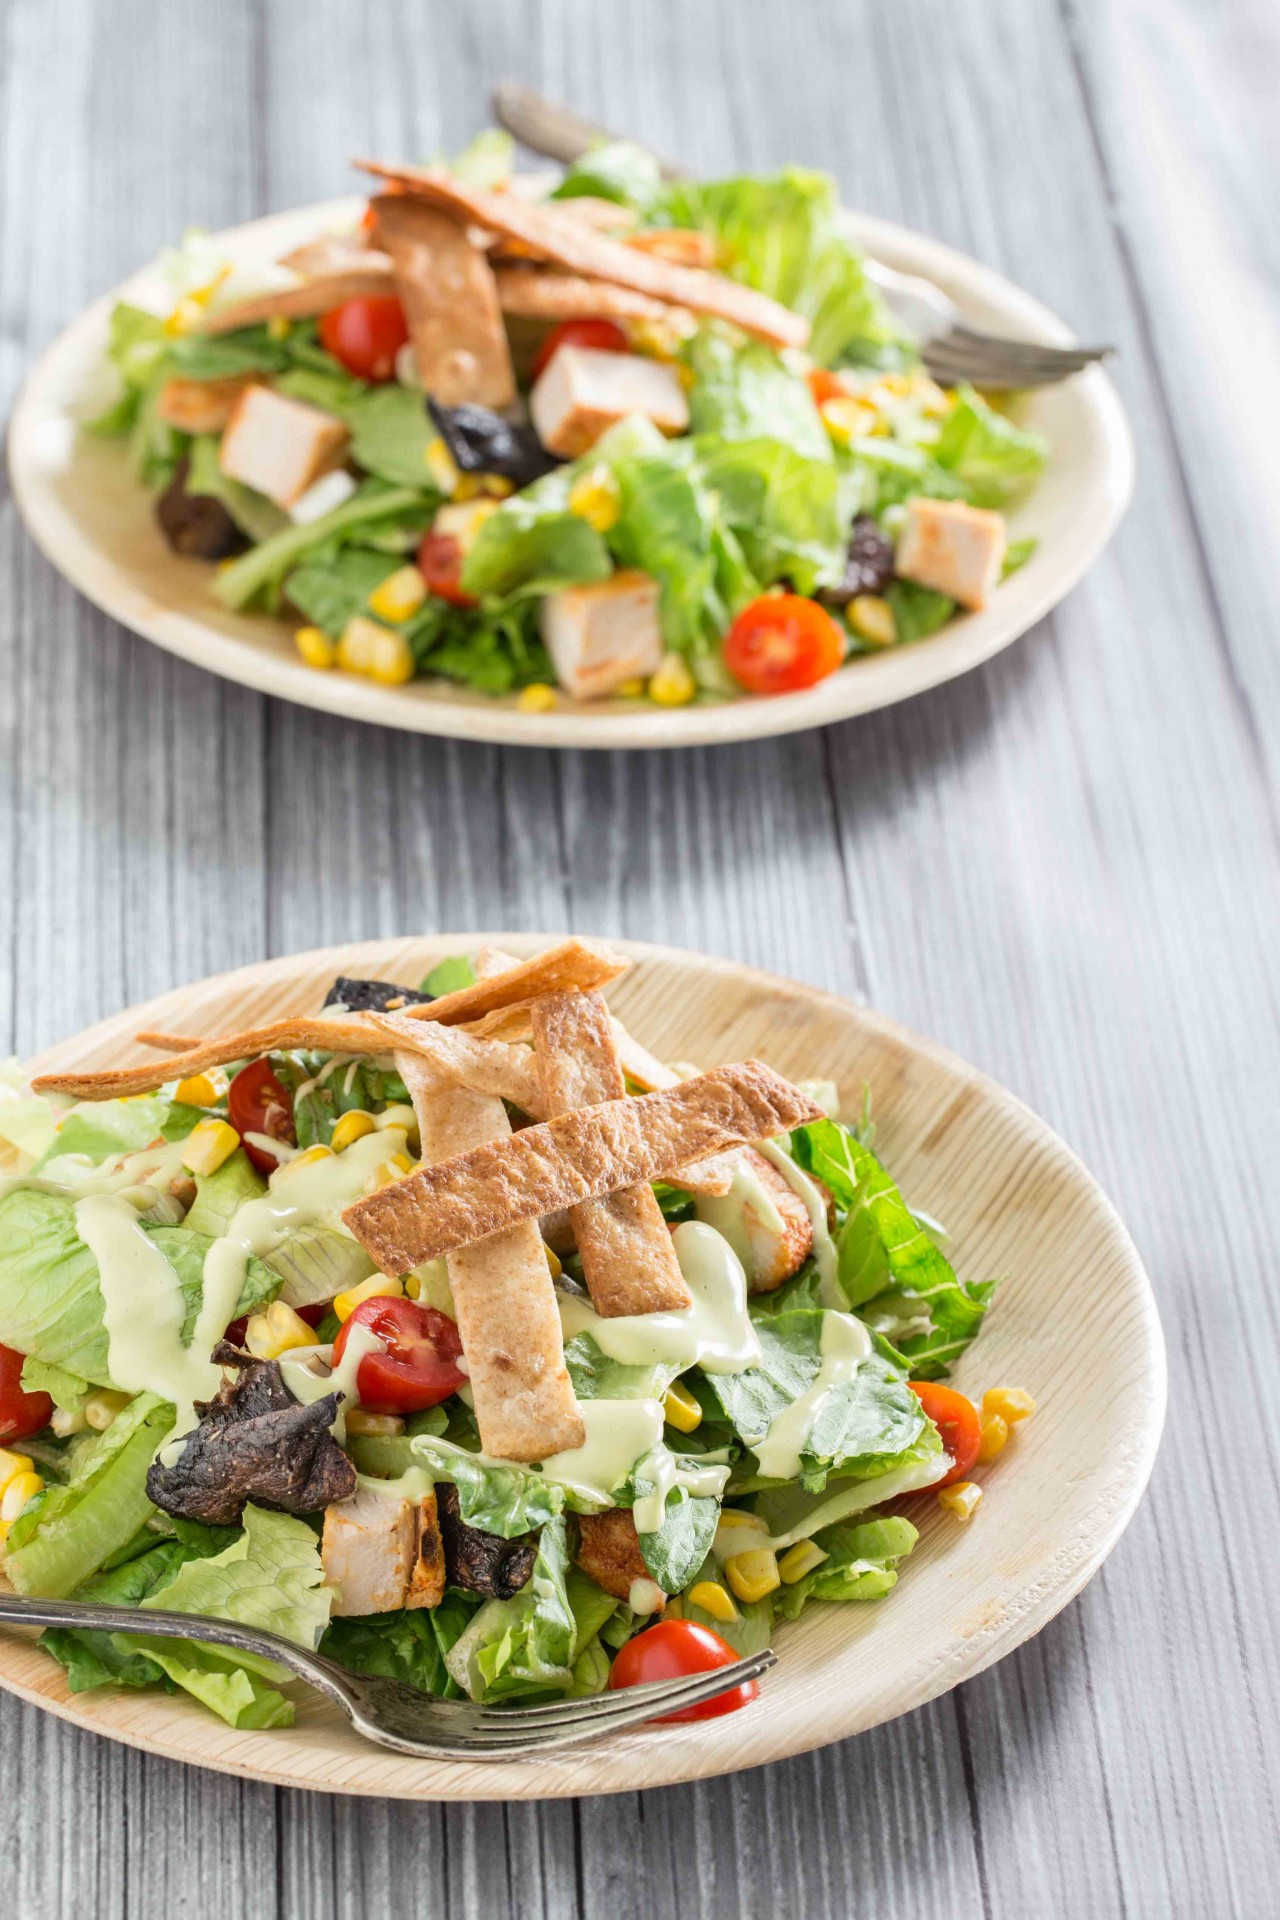 ... Chicken and Corn Salad with Creamy Avocado Dressing - Overtime